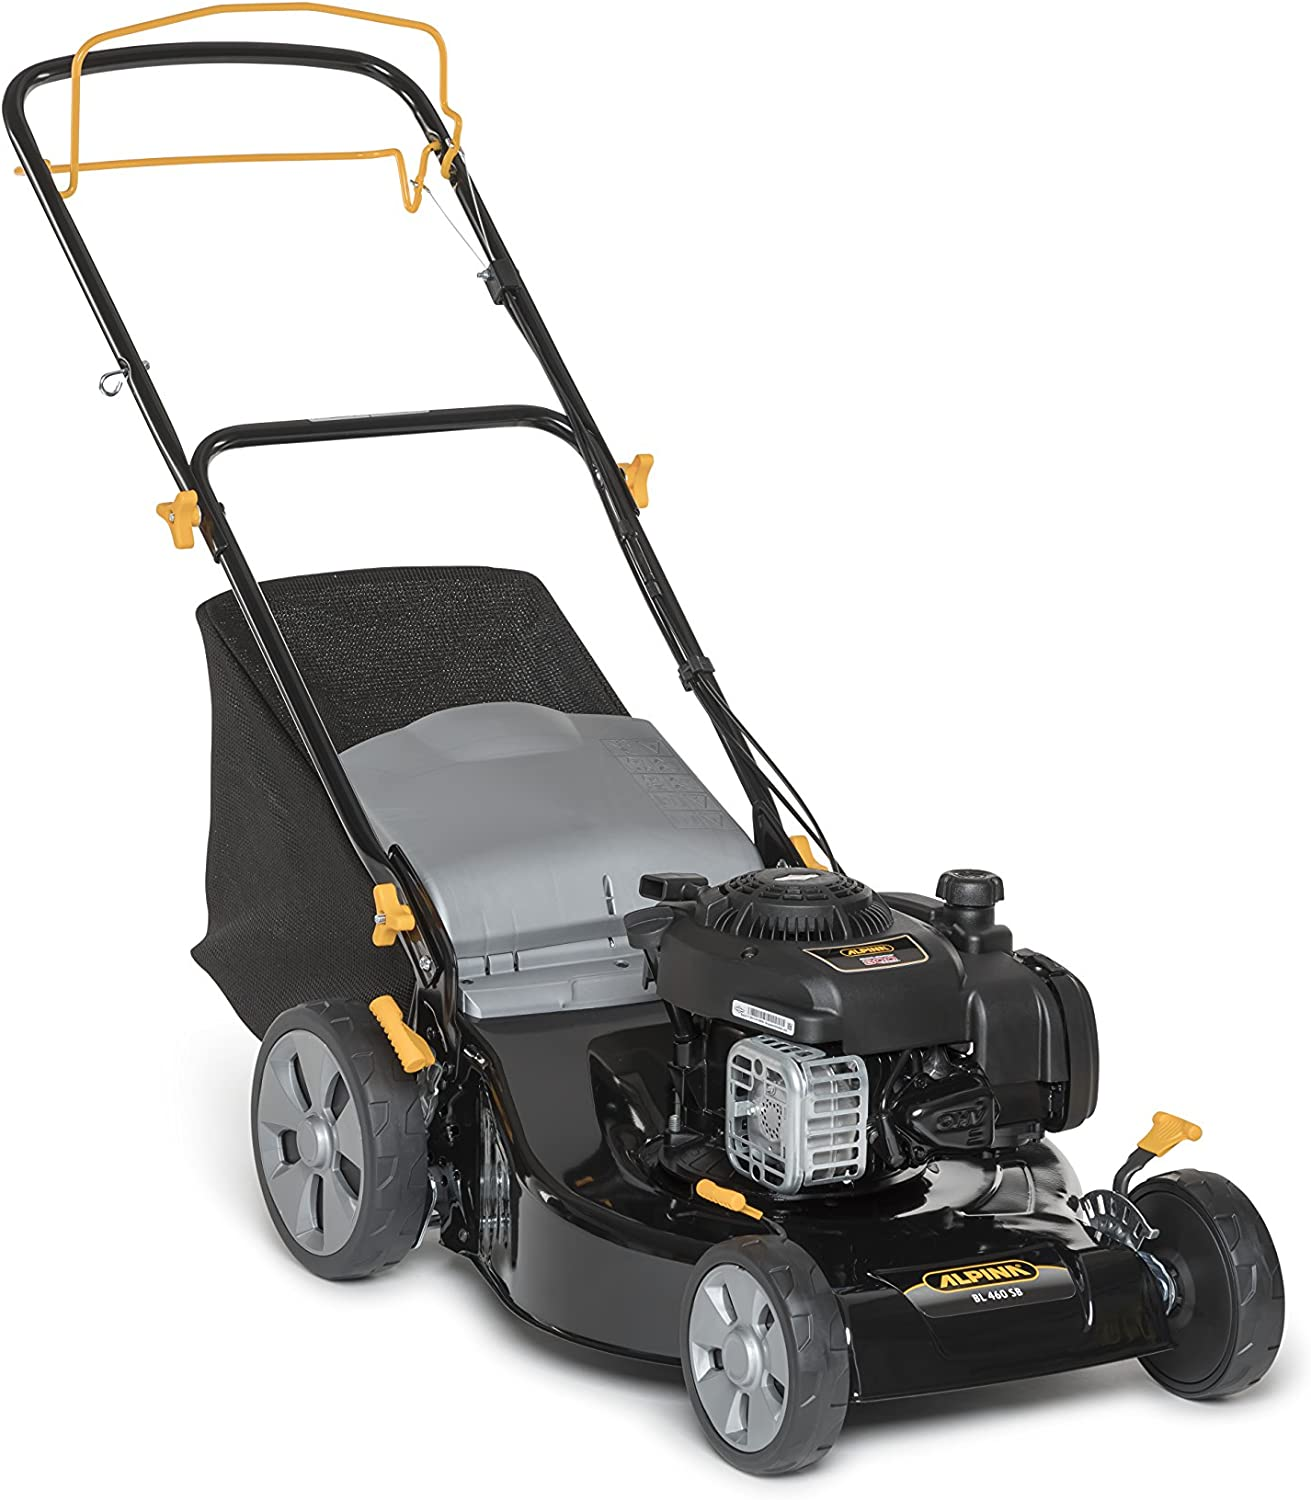 Alpina 295492024/A15 cortadora de césped Walk behind lawn mower Gasolina - Cortacésped (Walk behind lawn mower, 46 cm, 2,7 cm, 8 cm, 900 m², 27-80 mm)